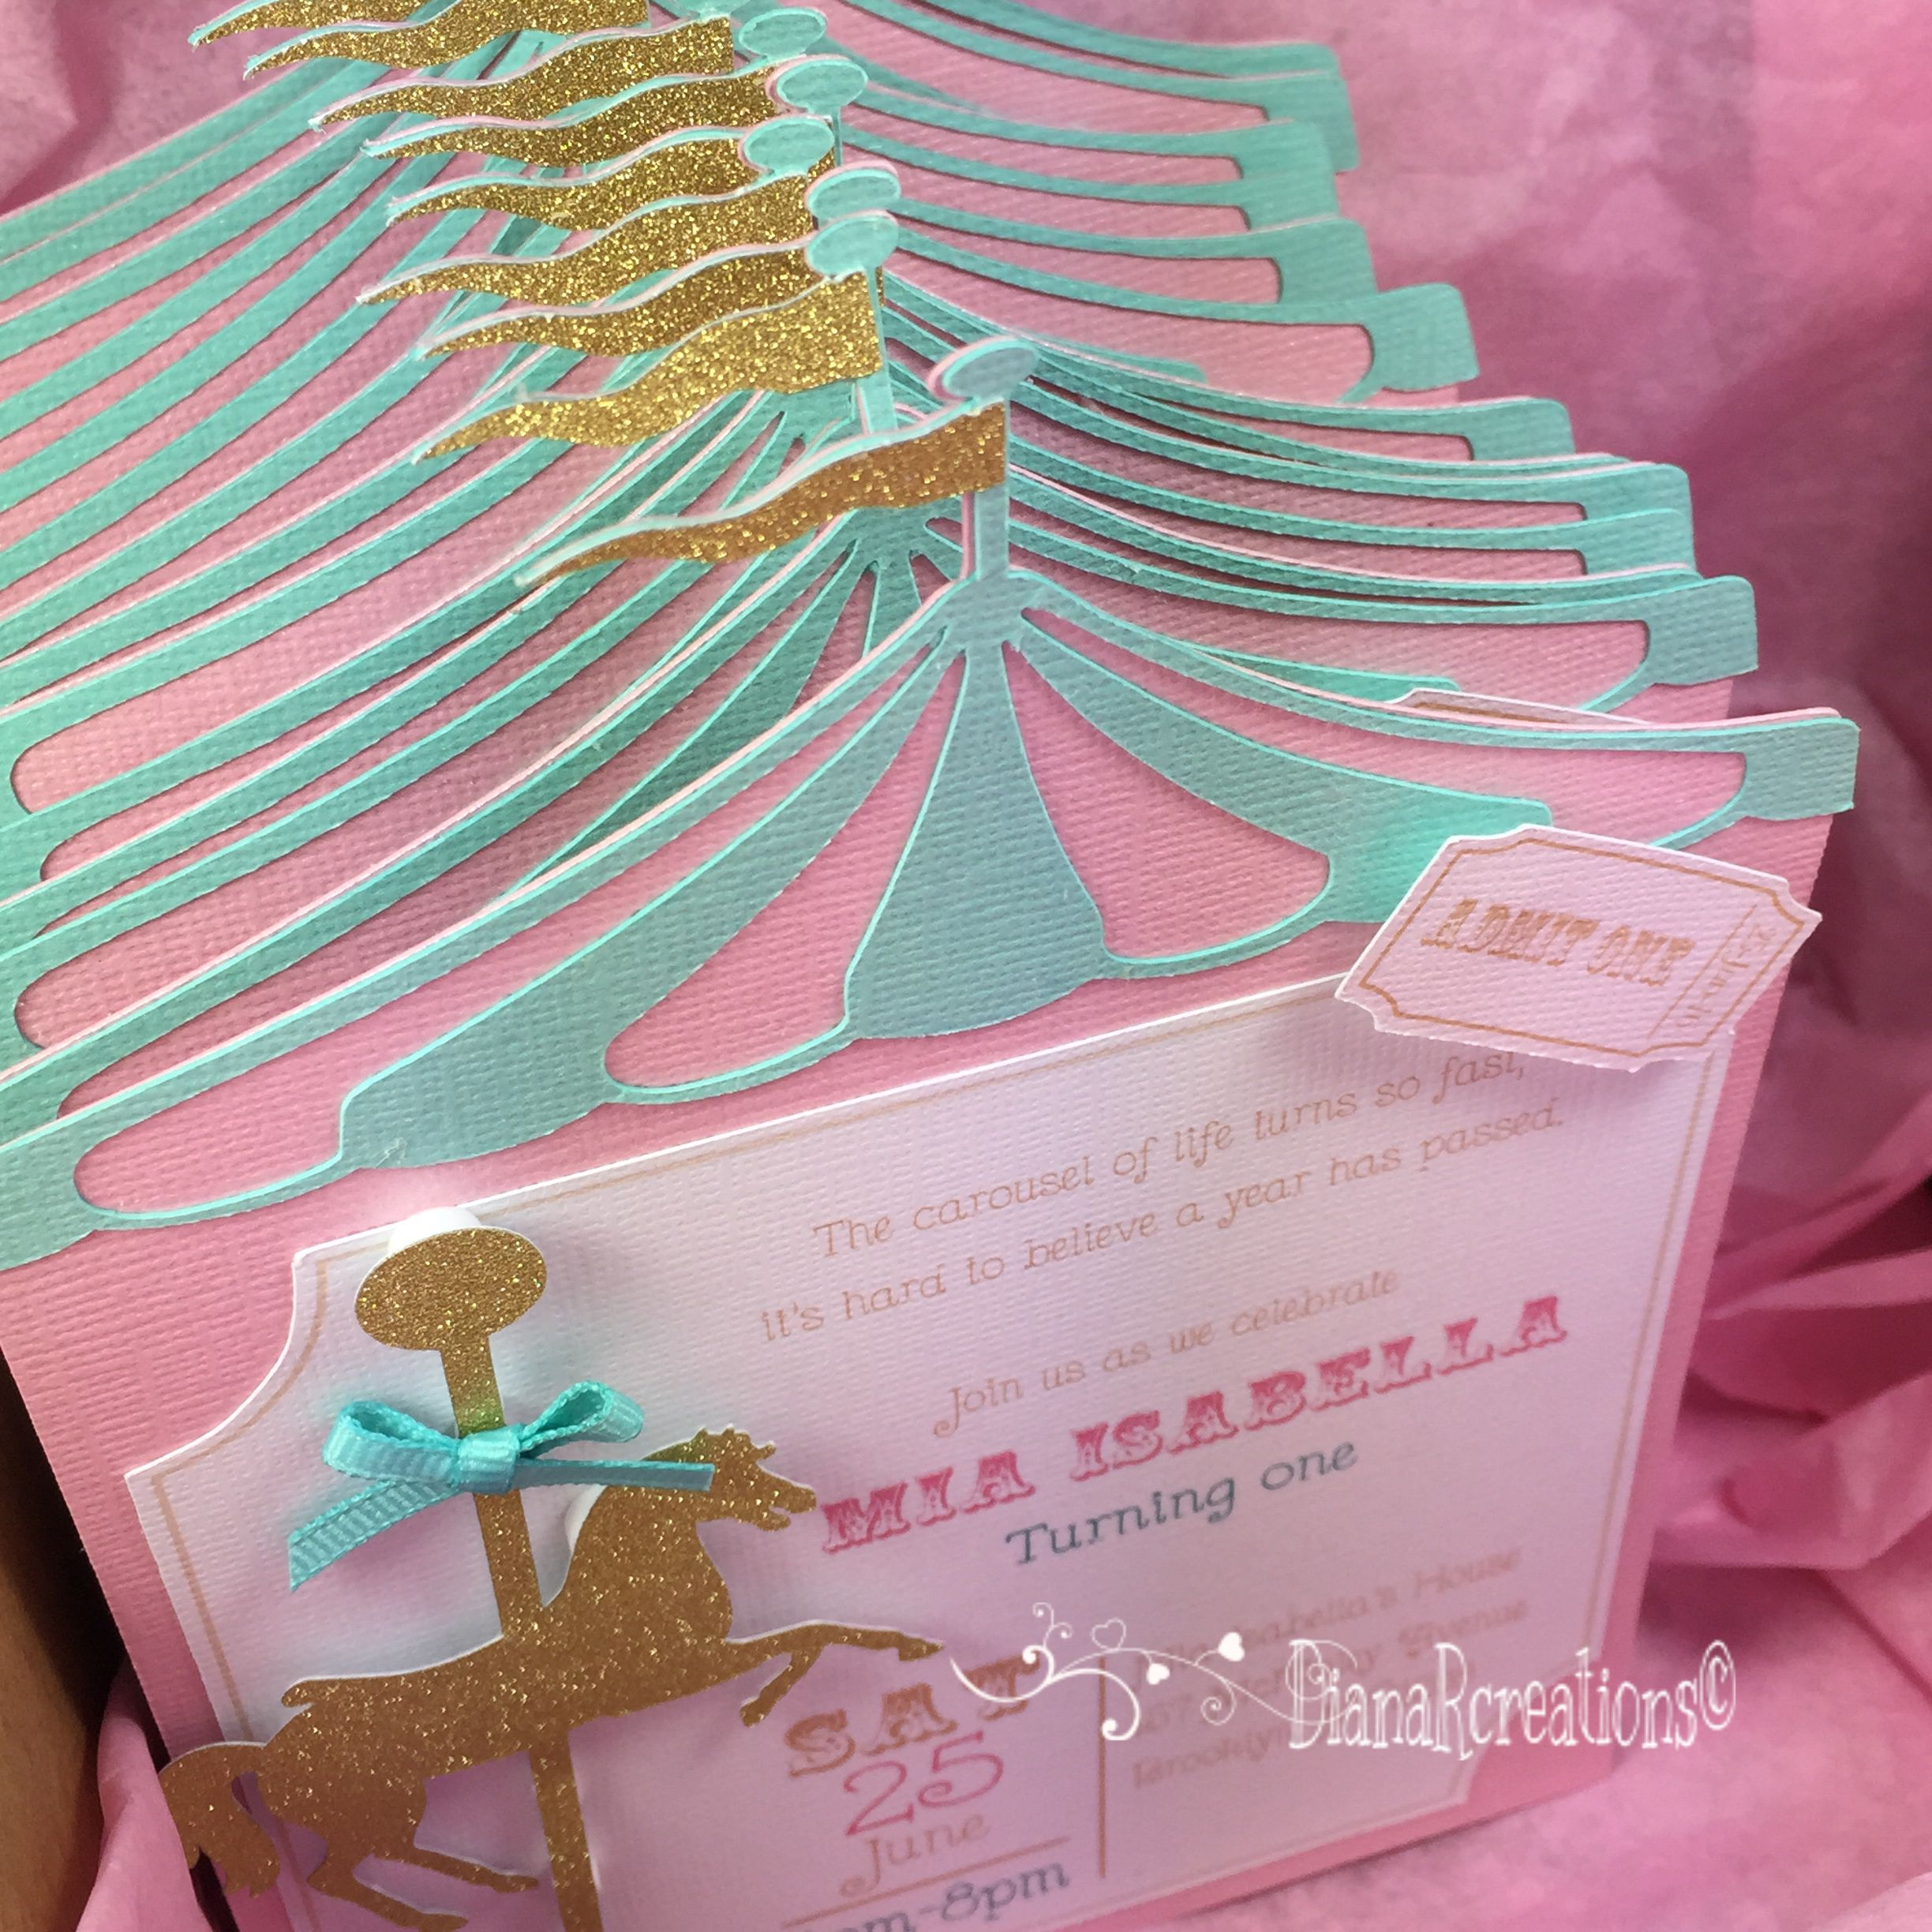 Carousel horse birthday invitations! | Birthday invites ...